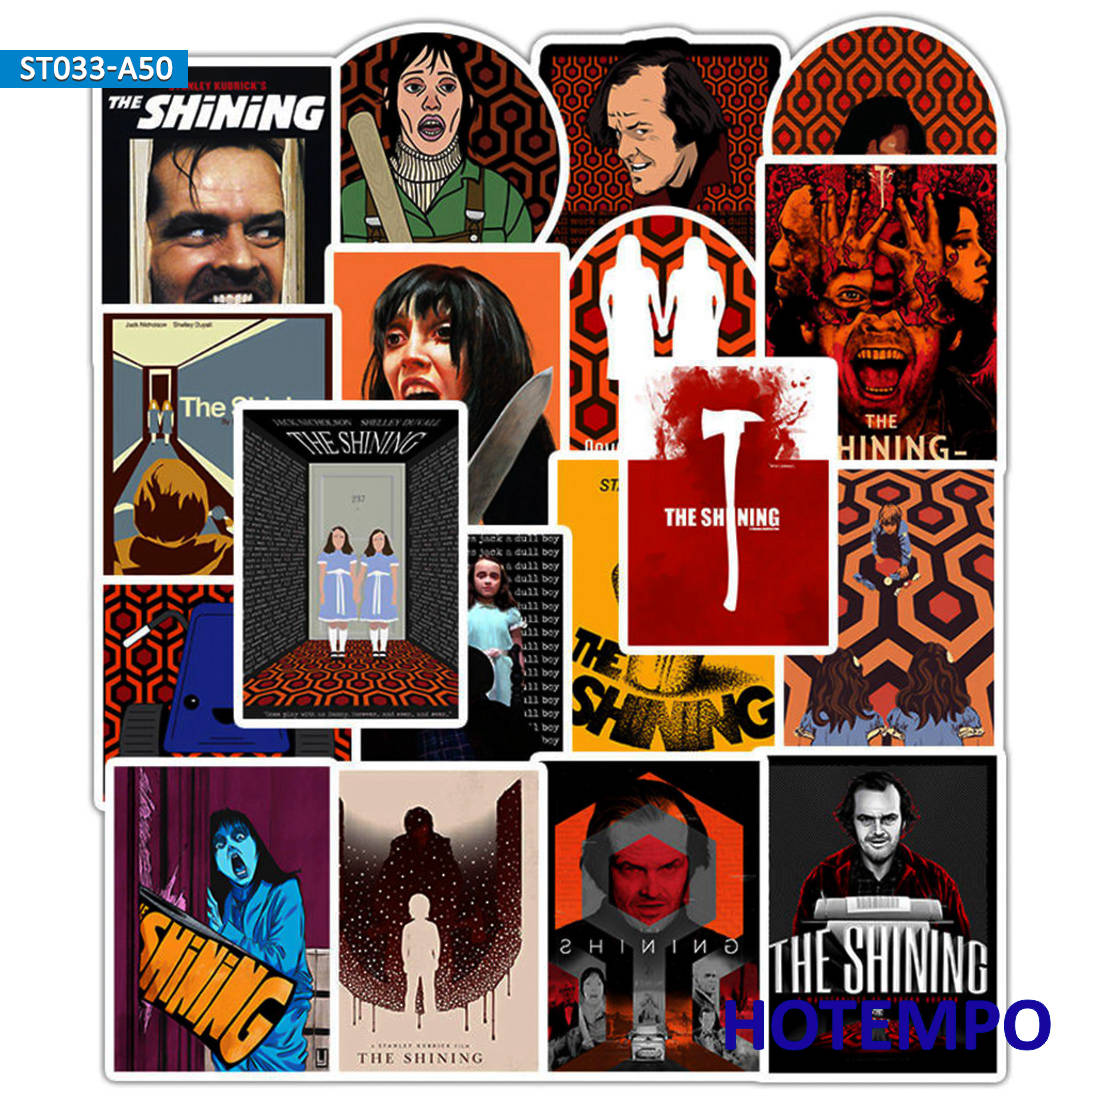 50pcs Horror Movie The Shining Stickers Ghost Hotel For DIY Mobile Phone Laptop Luggage Case Skateboard Bike Anime Decal Sticker